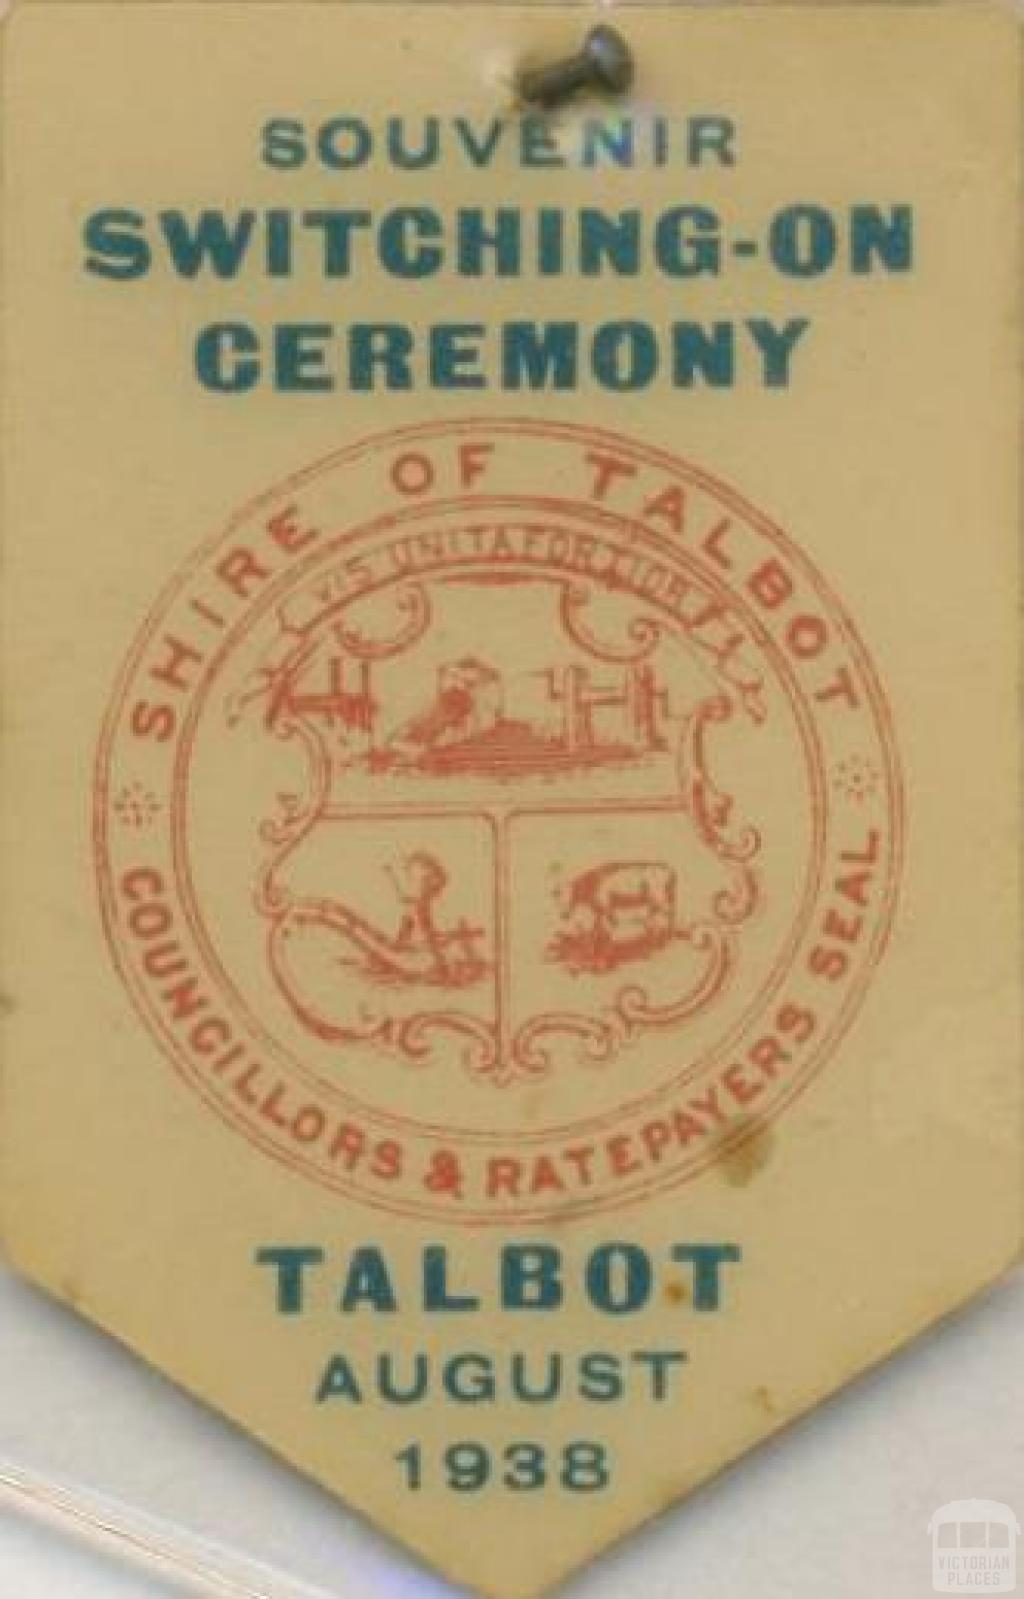 Switching-On Ceremony souvenir, Talbot, 1938